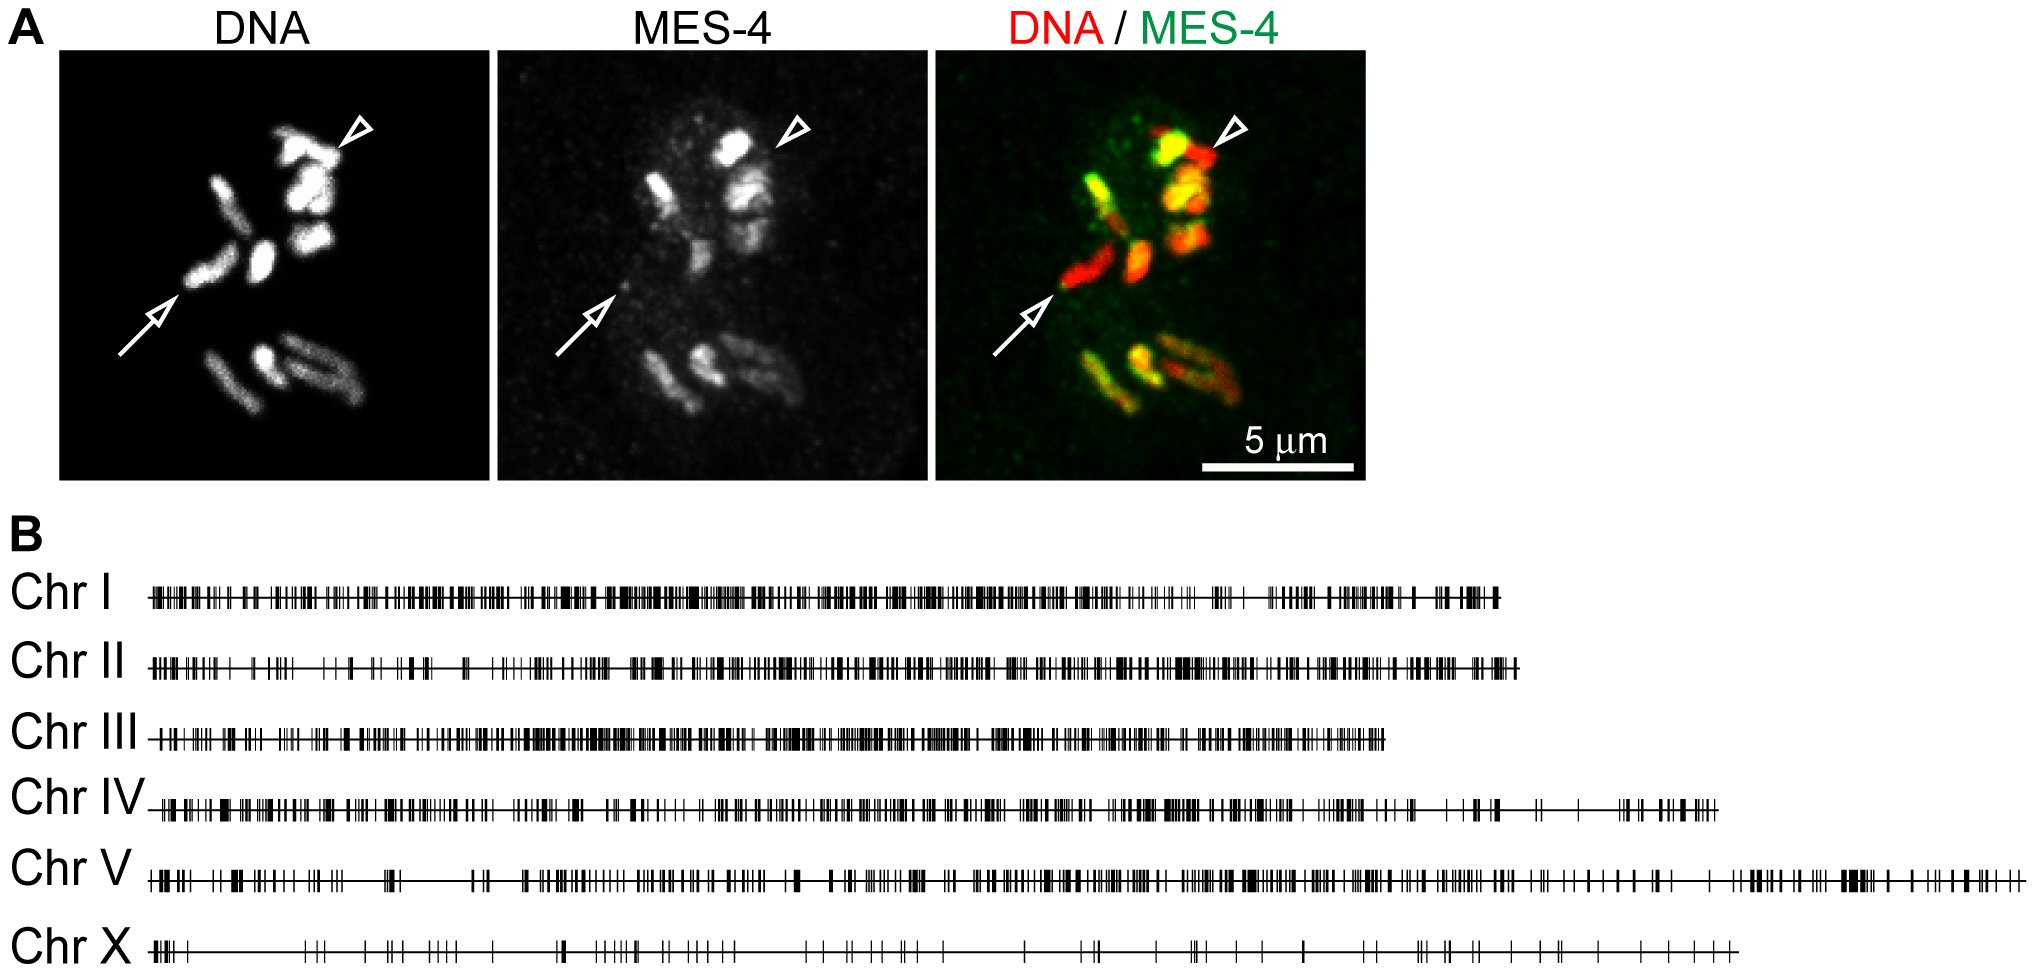 MES-4 is concentrated on the autosomes and the left tip of the X chromosome.